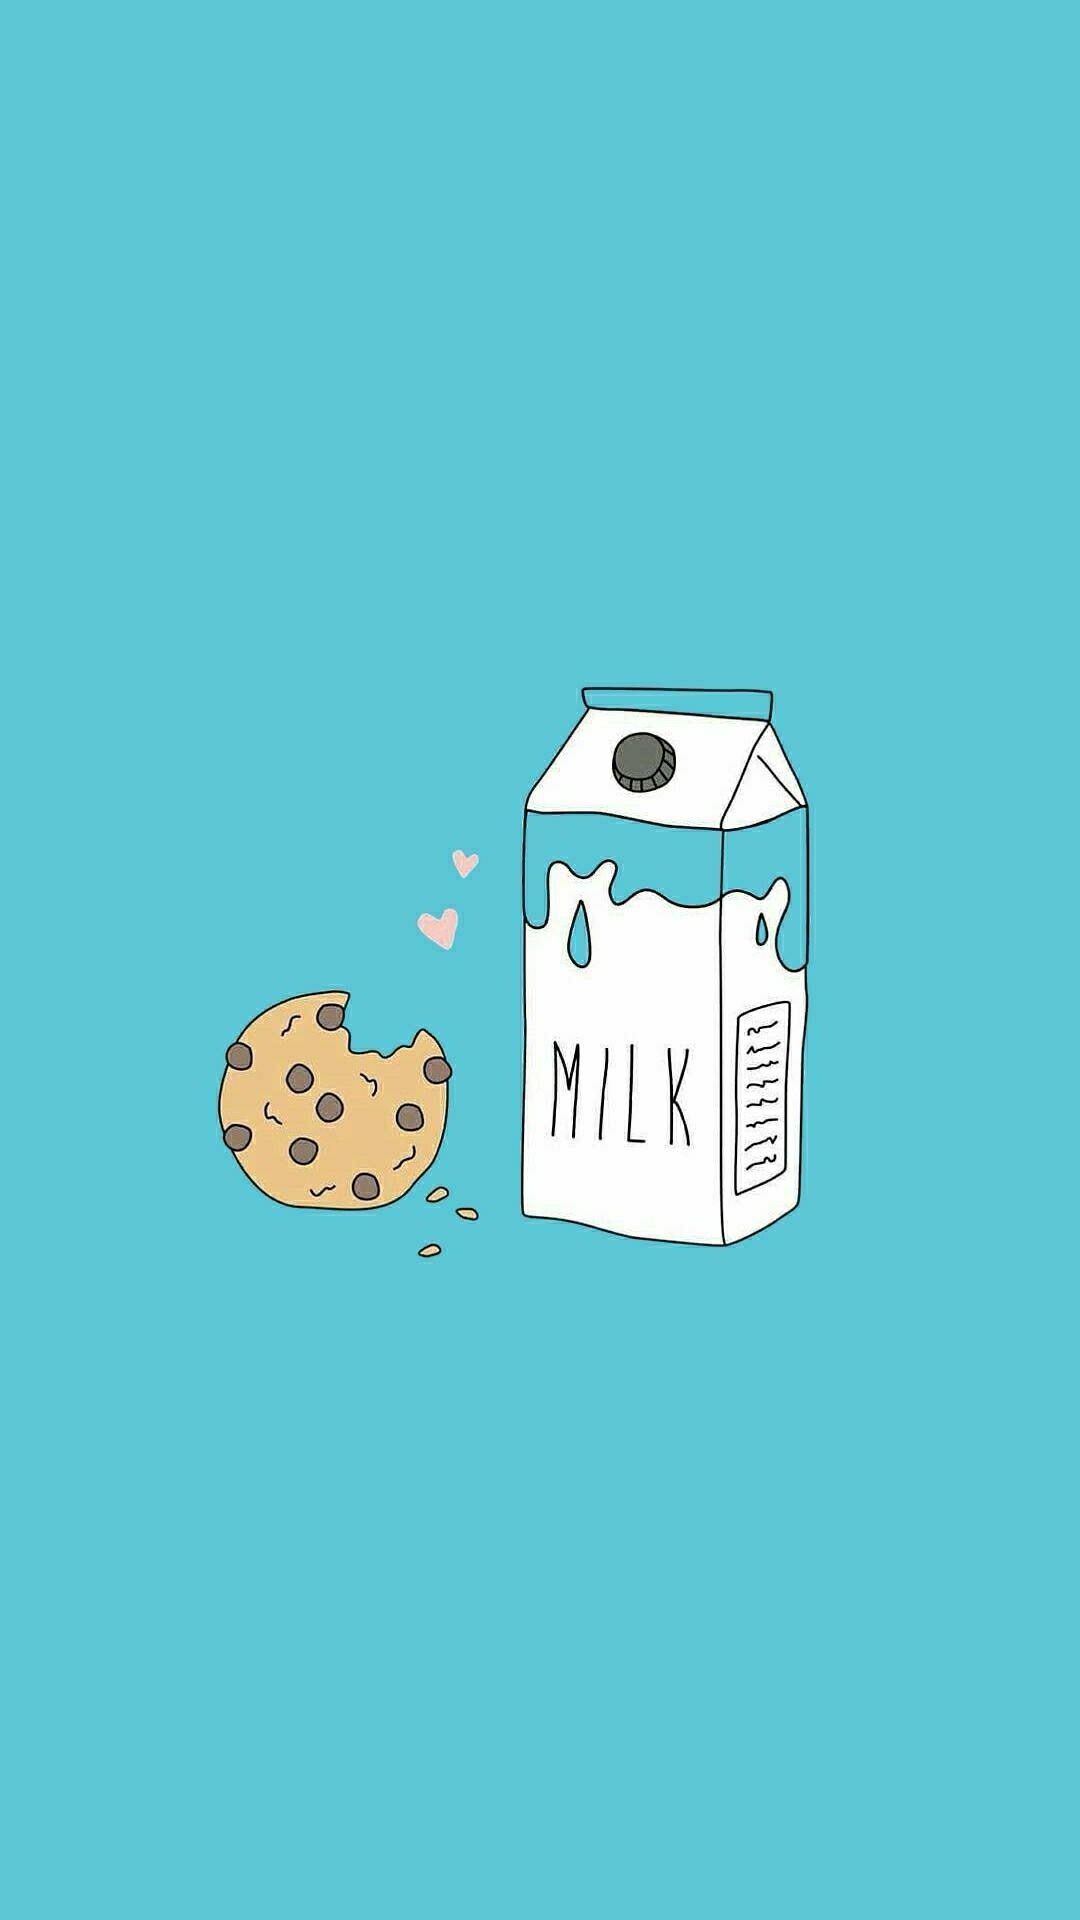 Download Cute Food Wallpapers Images For Iphone Wallpaper Hupages Cute Food Wallpaper Wallpaper Iphone Cute Cartoon Wallpaper